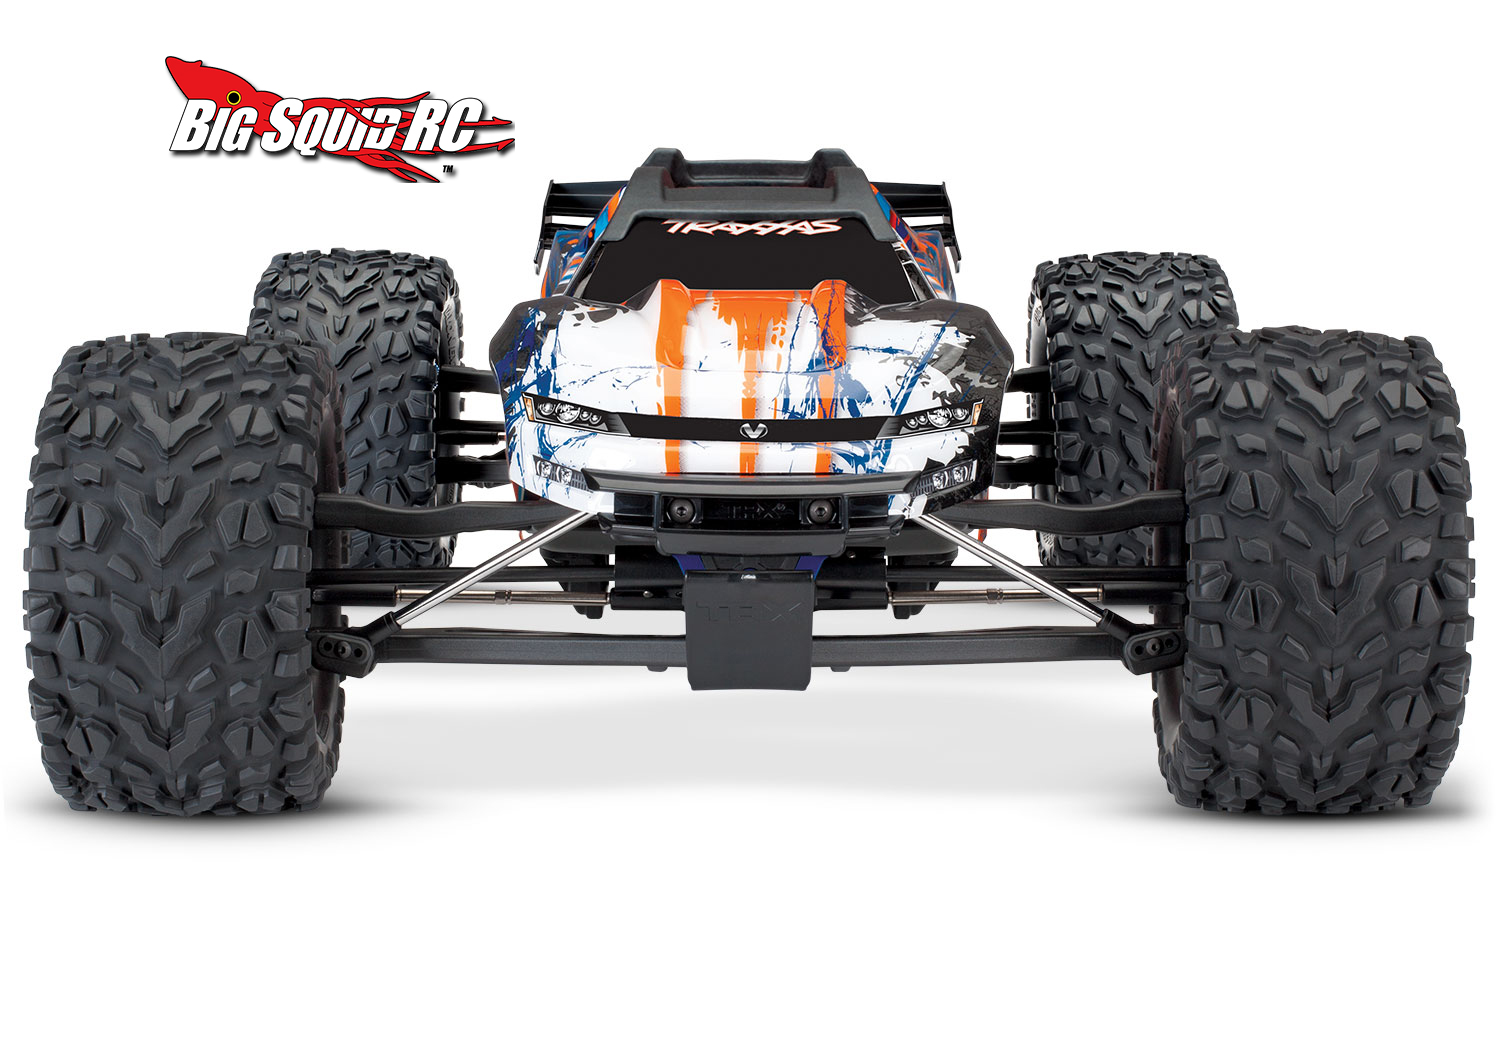 best brushless monster truck with Official New Traxxas E Revo 2 0 With Video on Traxxas E Revo Brushless Best Round Rc Car Money Can Buy  ment 10141 in addition Xray Xb8e 18 Electric Buggy as well Traxxas E Maxx Parts Diagram additionally Rc 15 Brushless Monster Truck further Traxxas Slash Wallpaper.